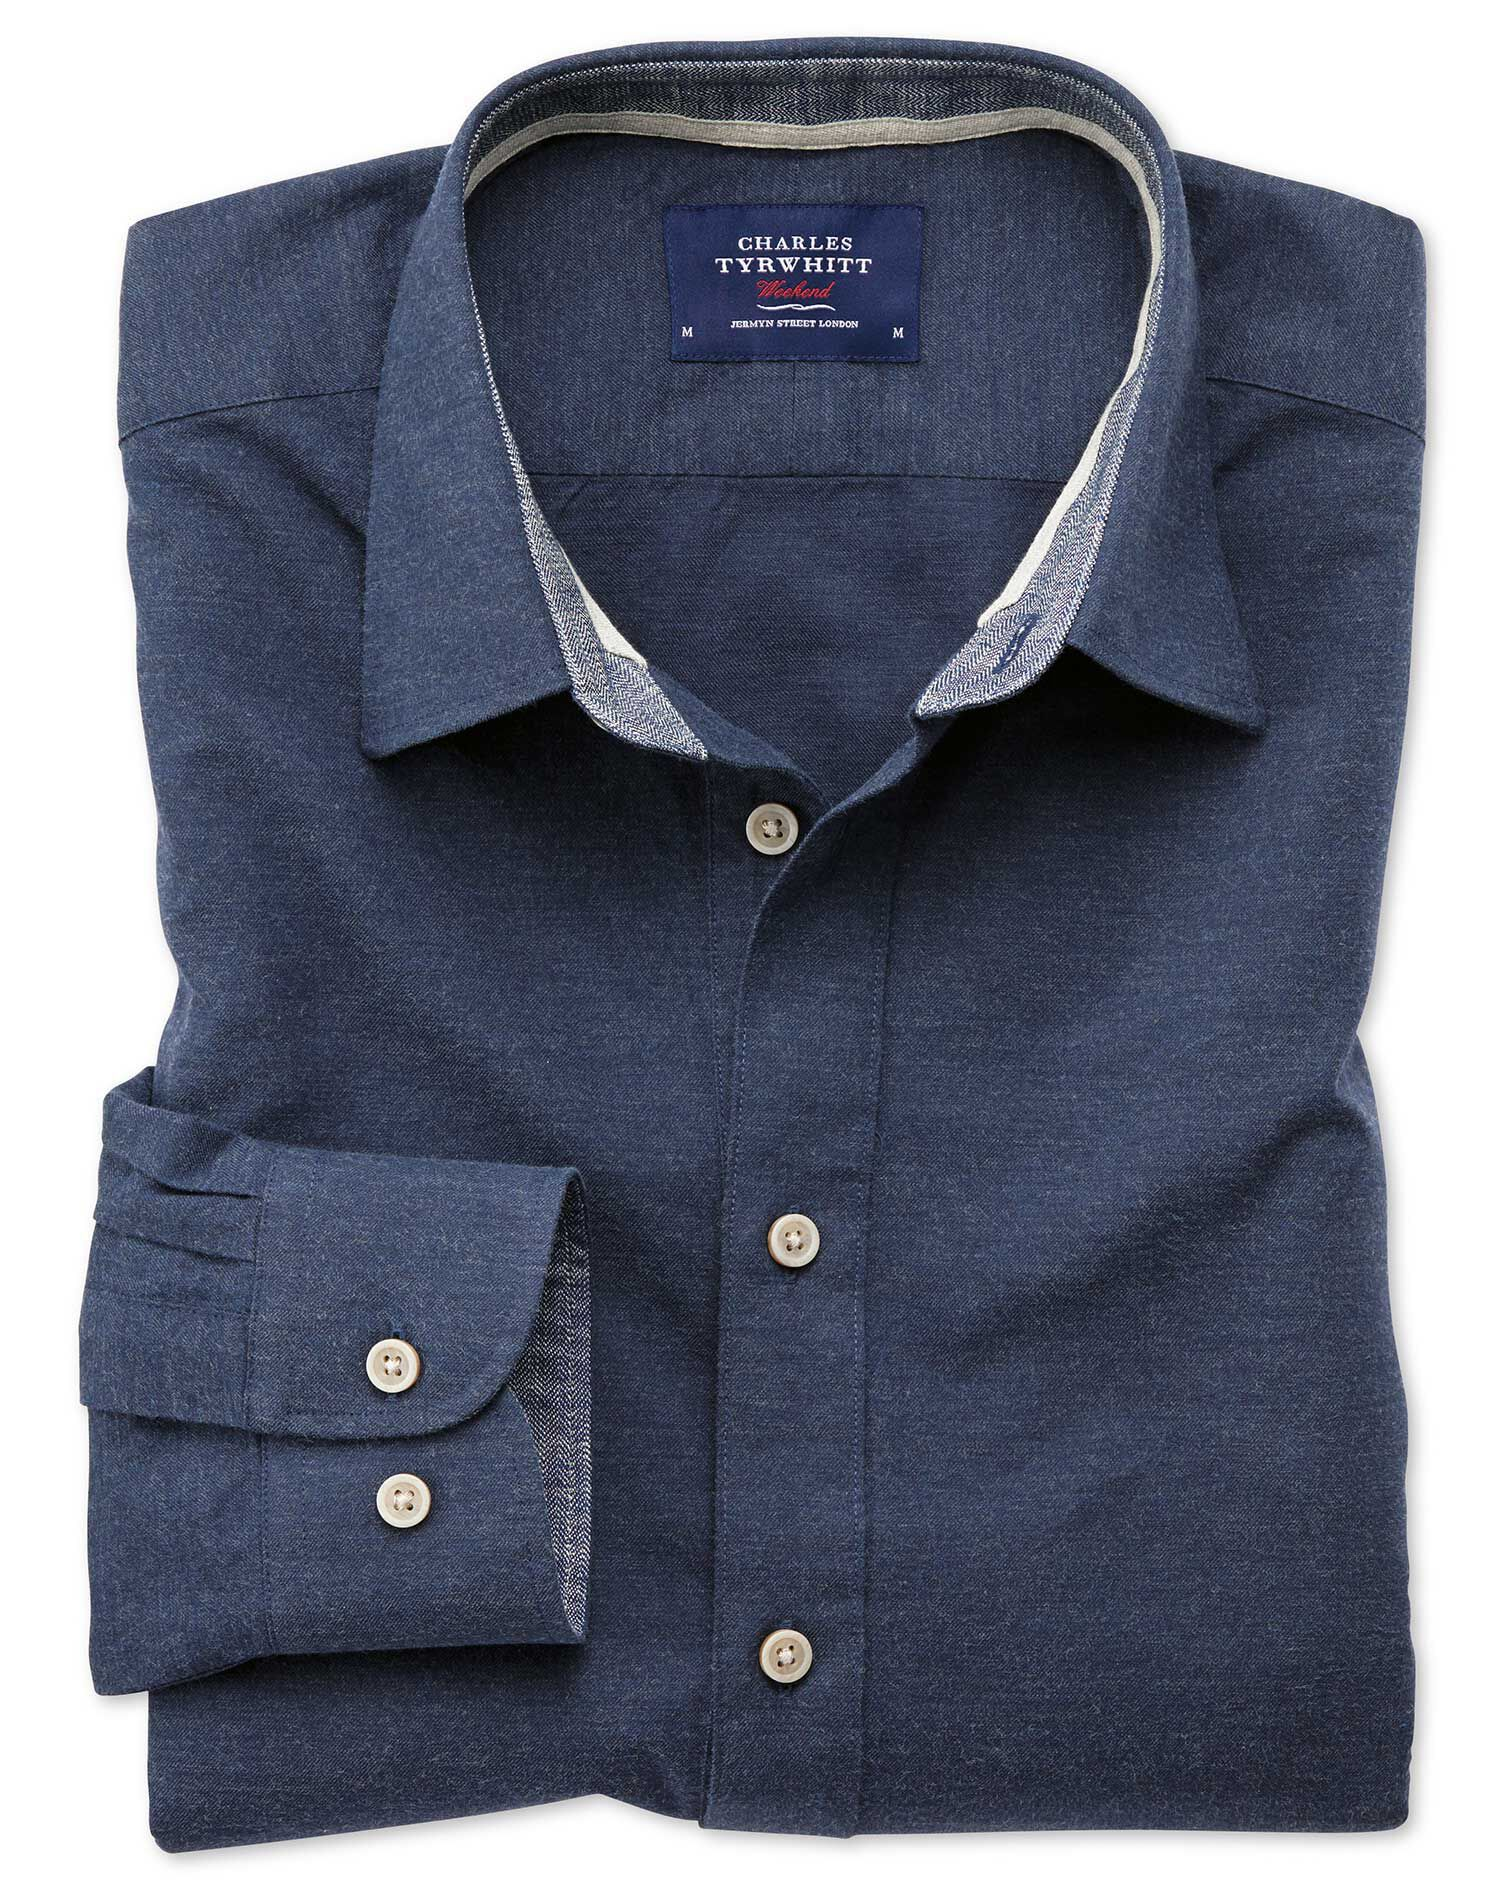 Slim Fit Popover Navy Blue Cotton Shirt Single Cuff Size Small by Charles Tyrwhitt